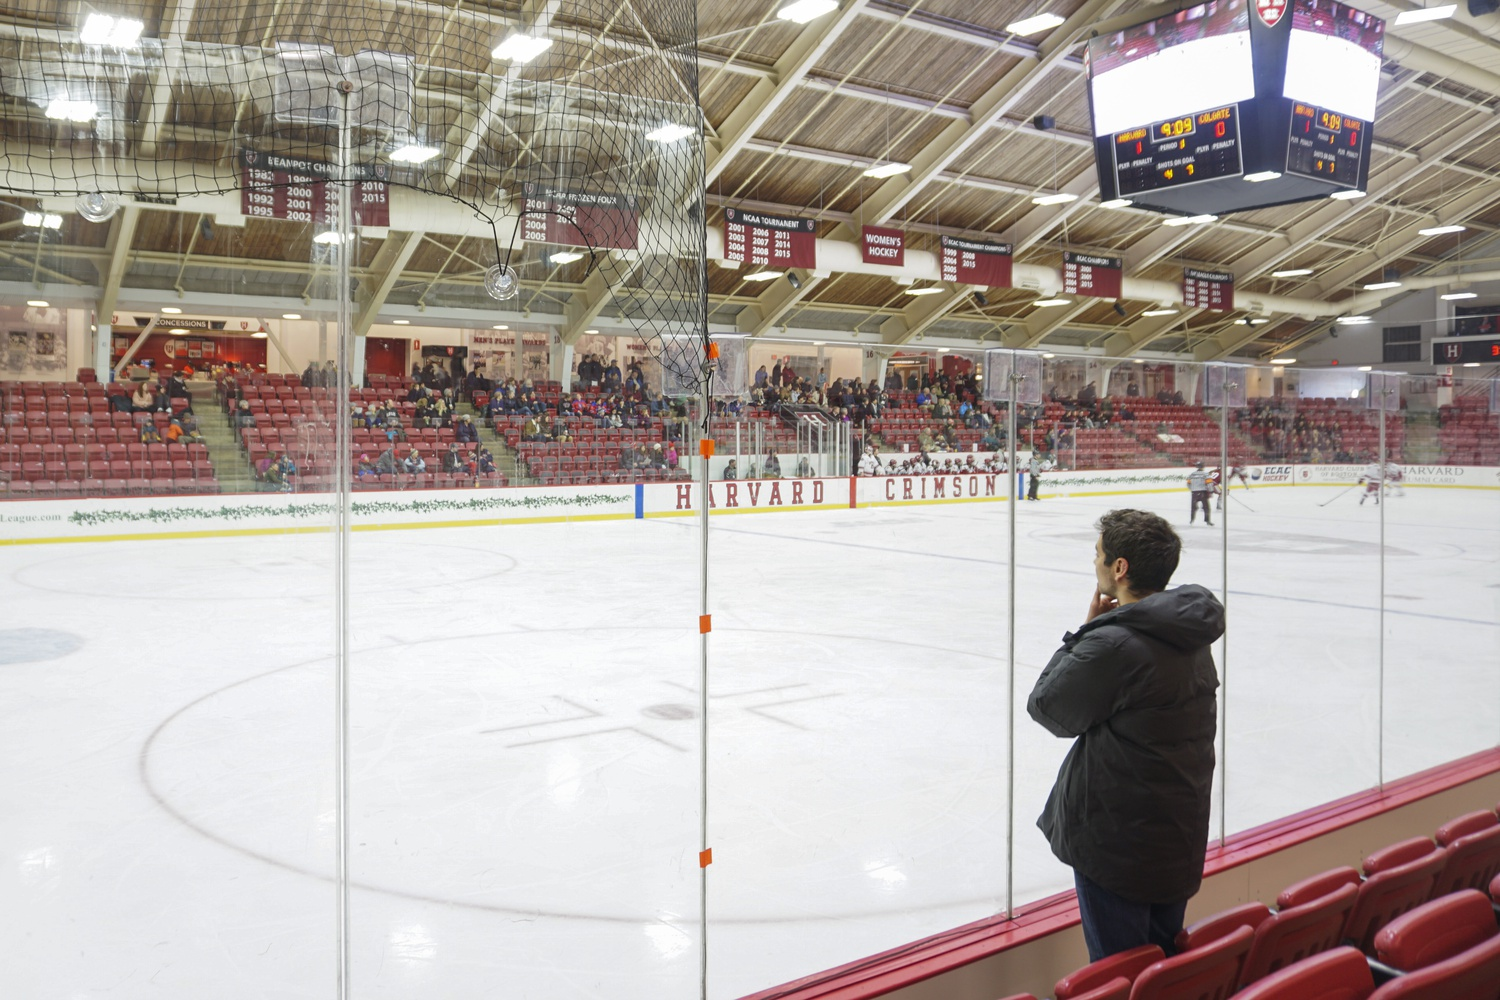 Women's Ice Hockey snatched a victory 4-3 against Colgate on Saturday afternoon at the Bright-Landry Hockey Center. Although the game has started, there are no players in Alec's visual field.